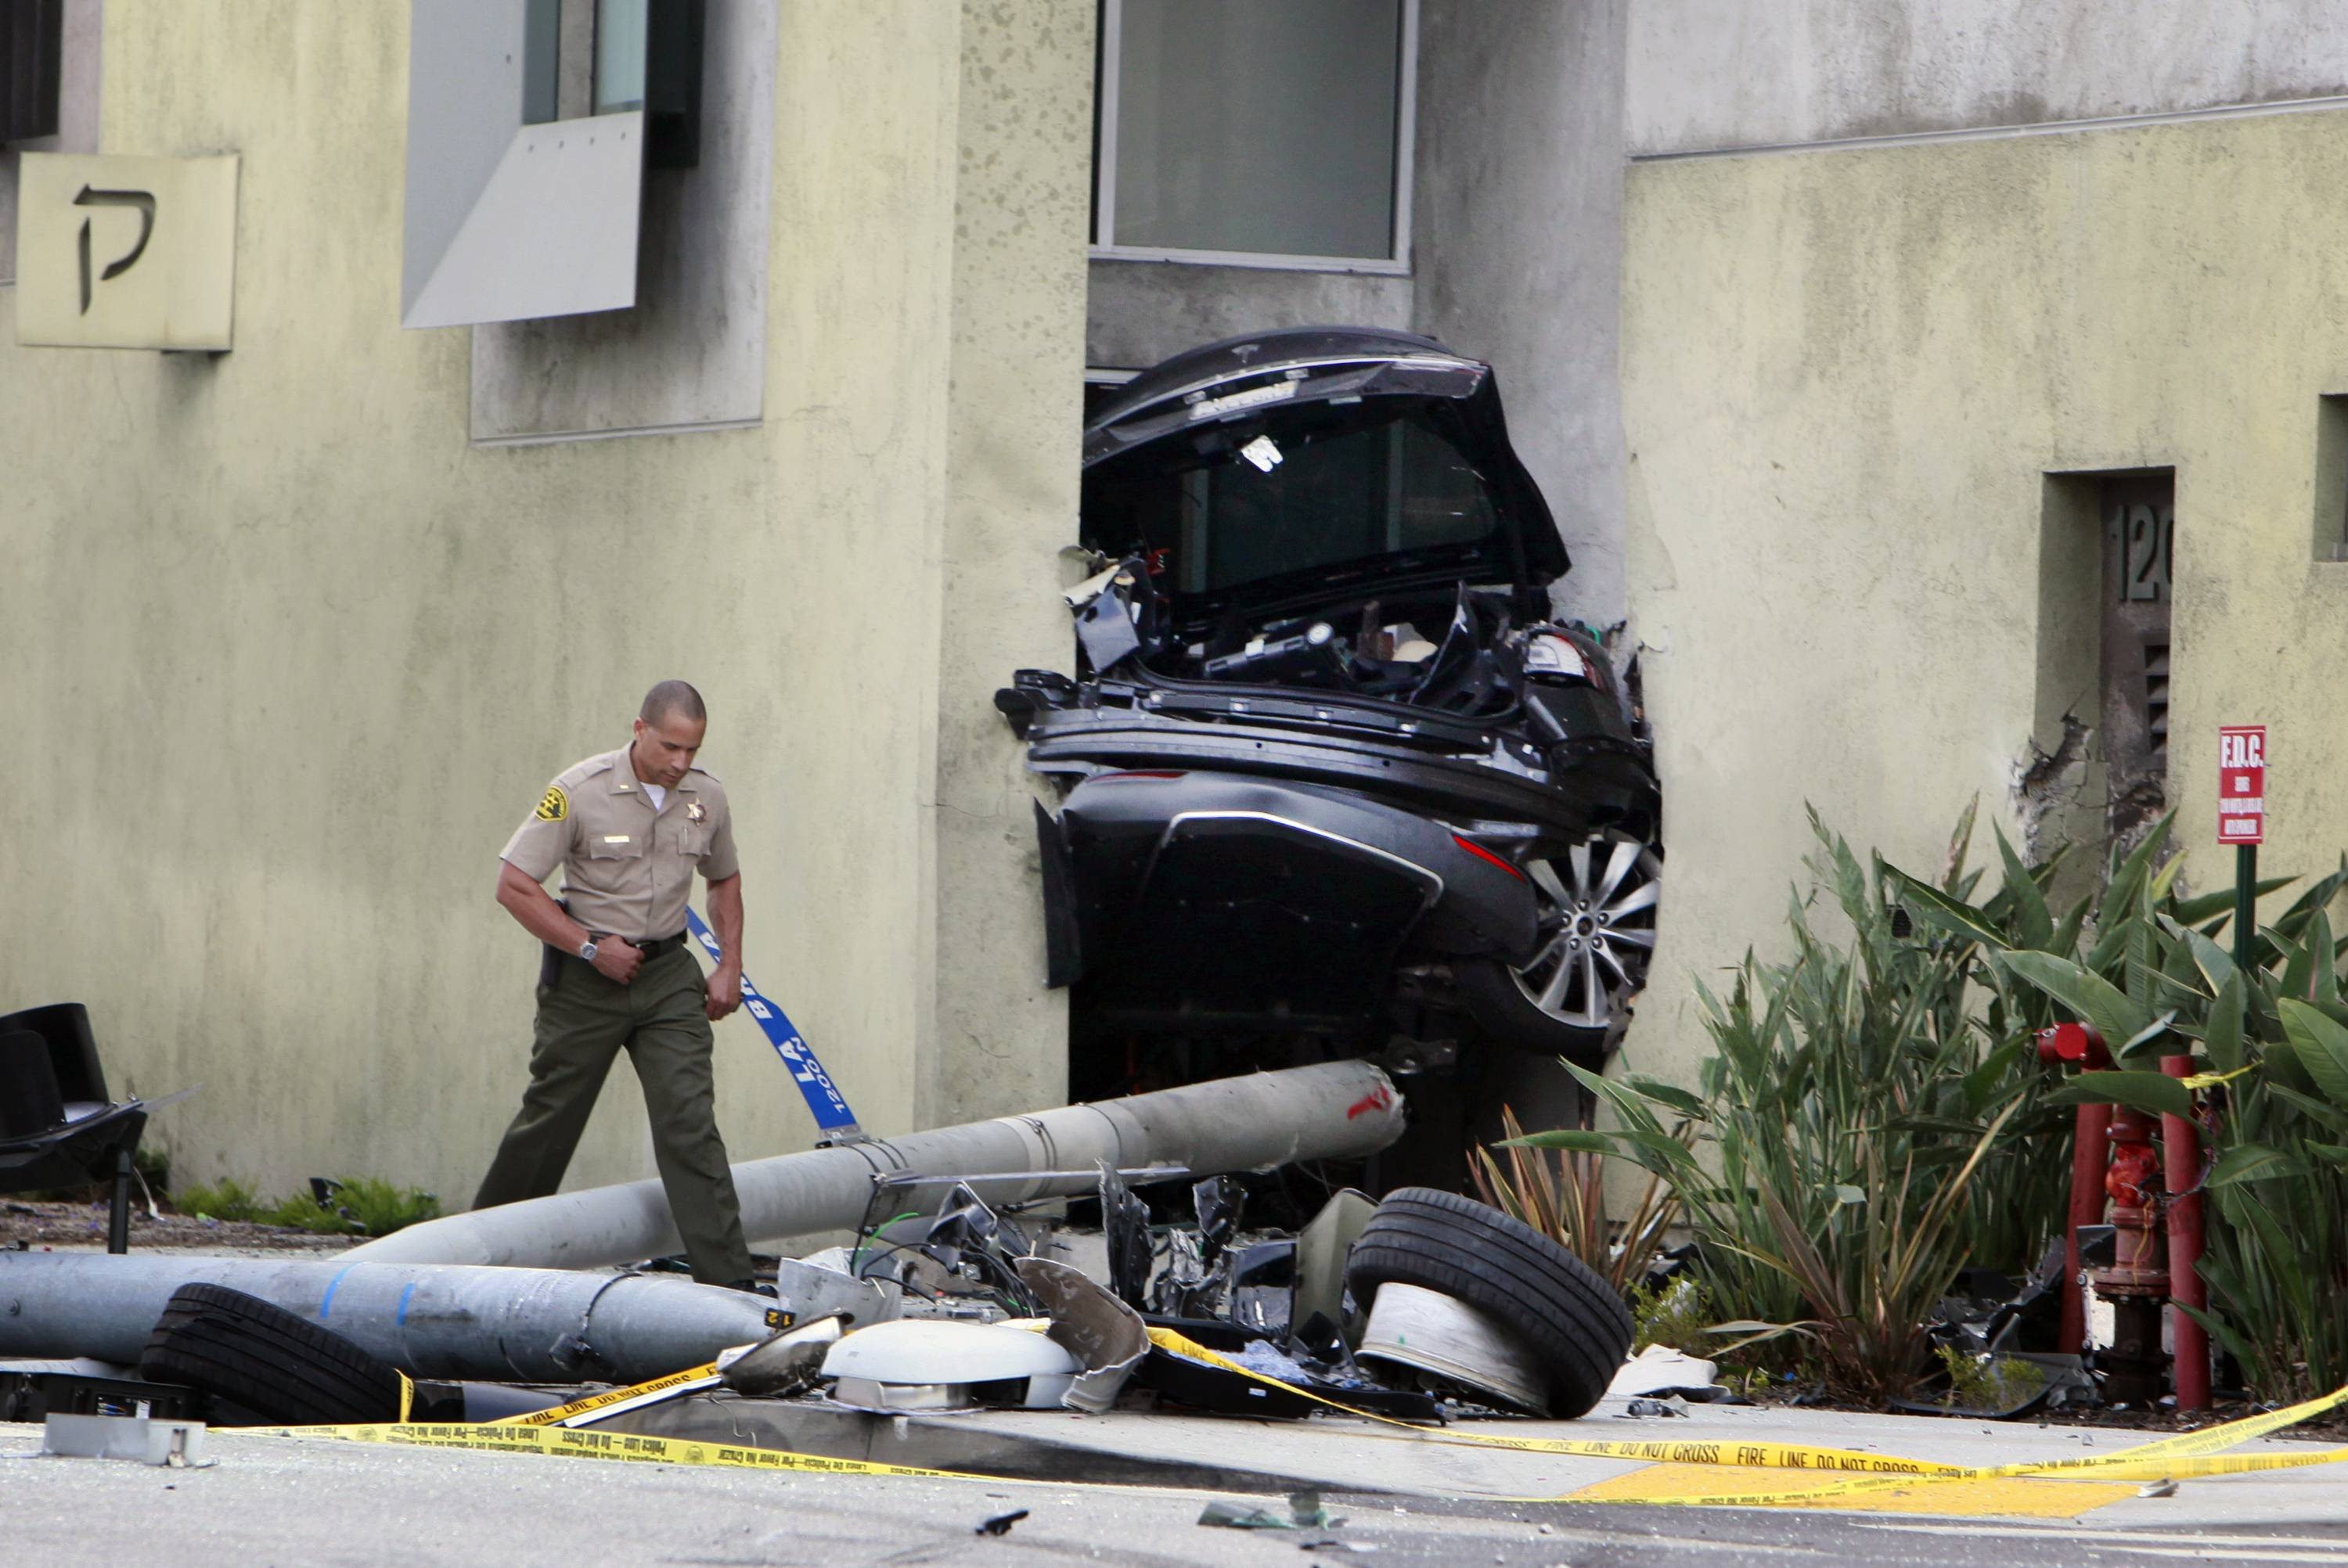 A Los Angeles County Sheriff's deputy walks past half the remains of a Tesla that wedged between two walls at Congregation Kol Ami synagogue in West Hollywood.